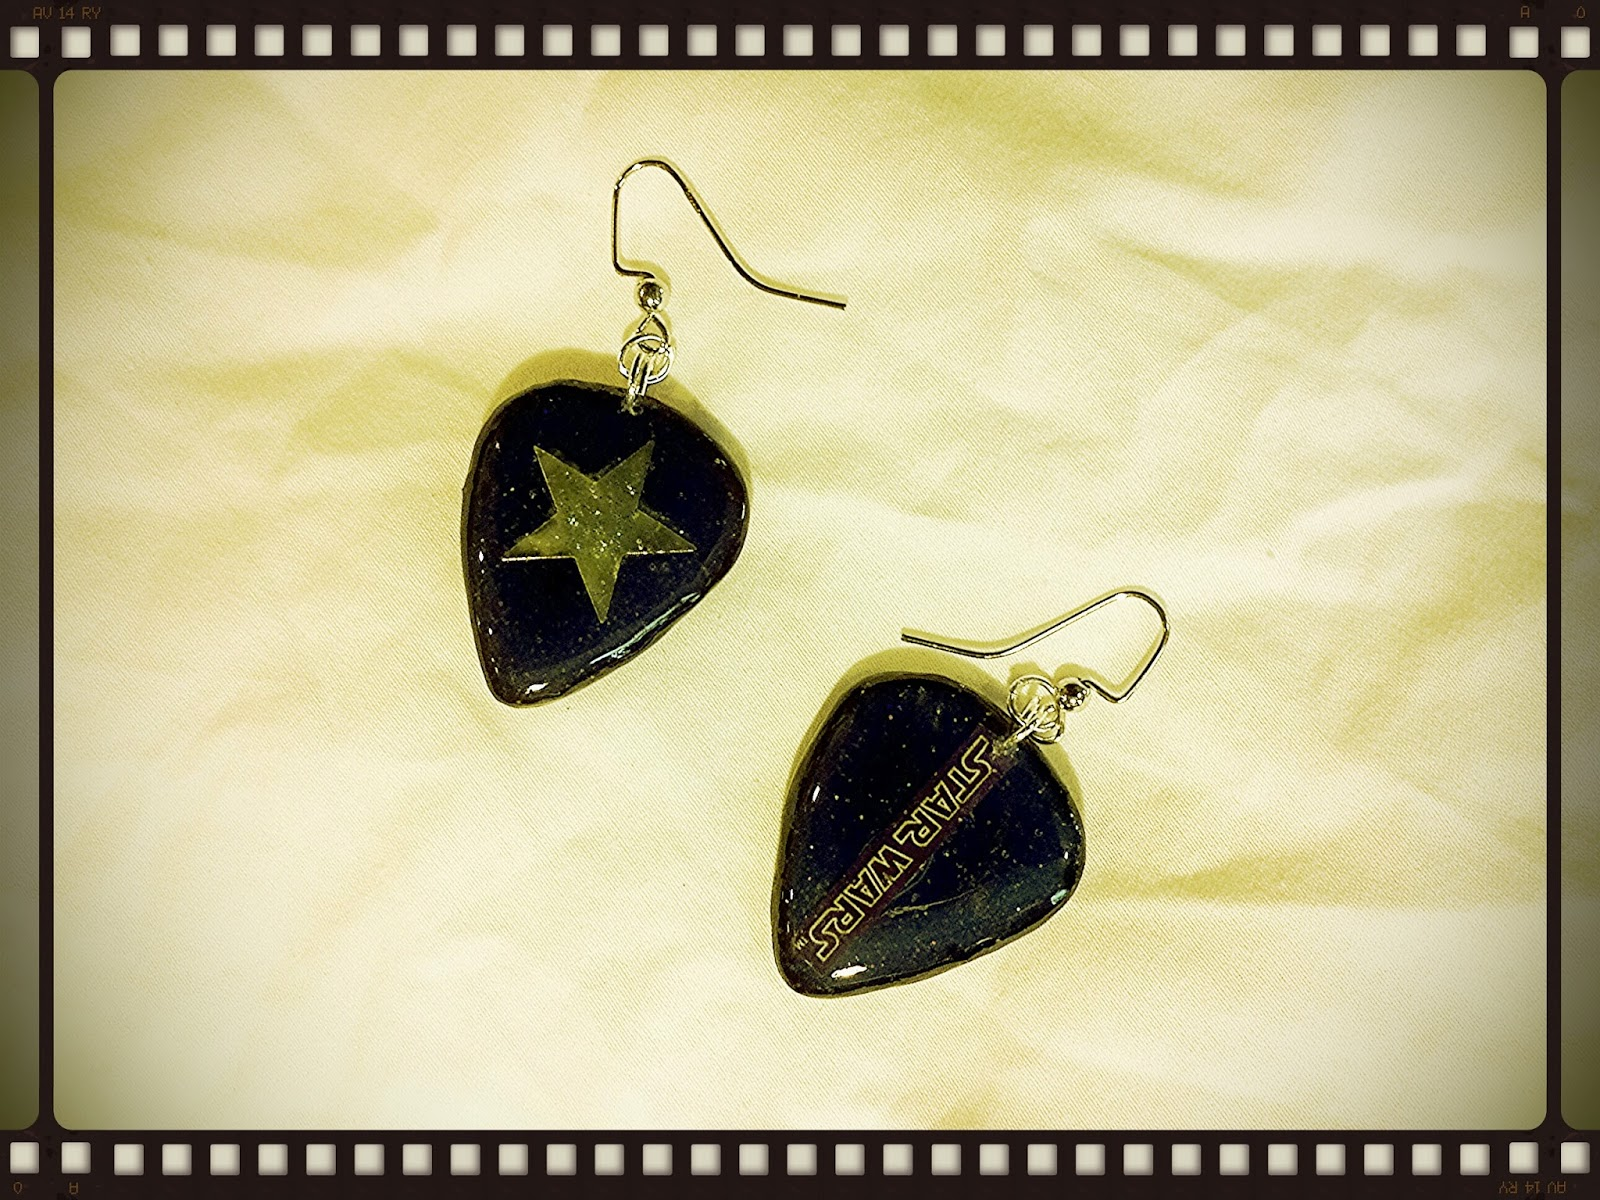 Back of Star Wars guitar pick earrings